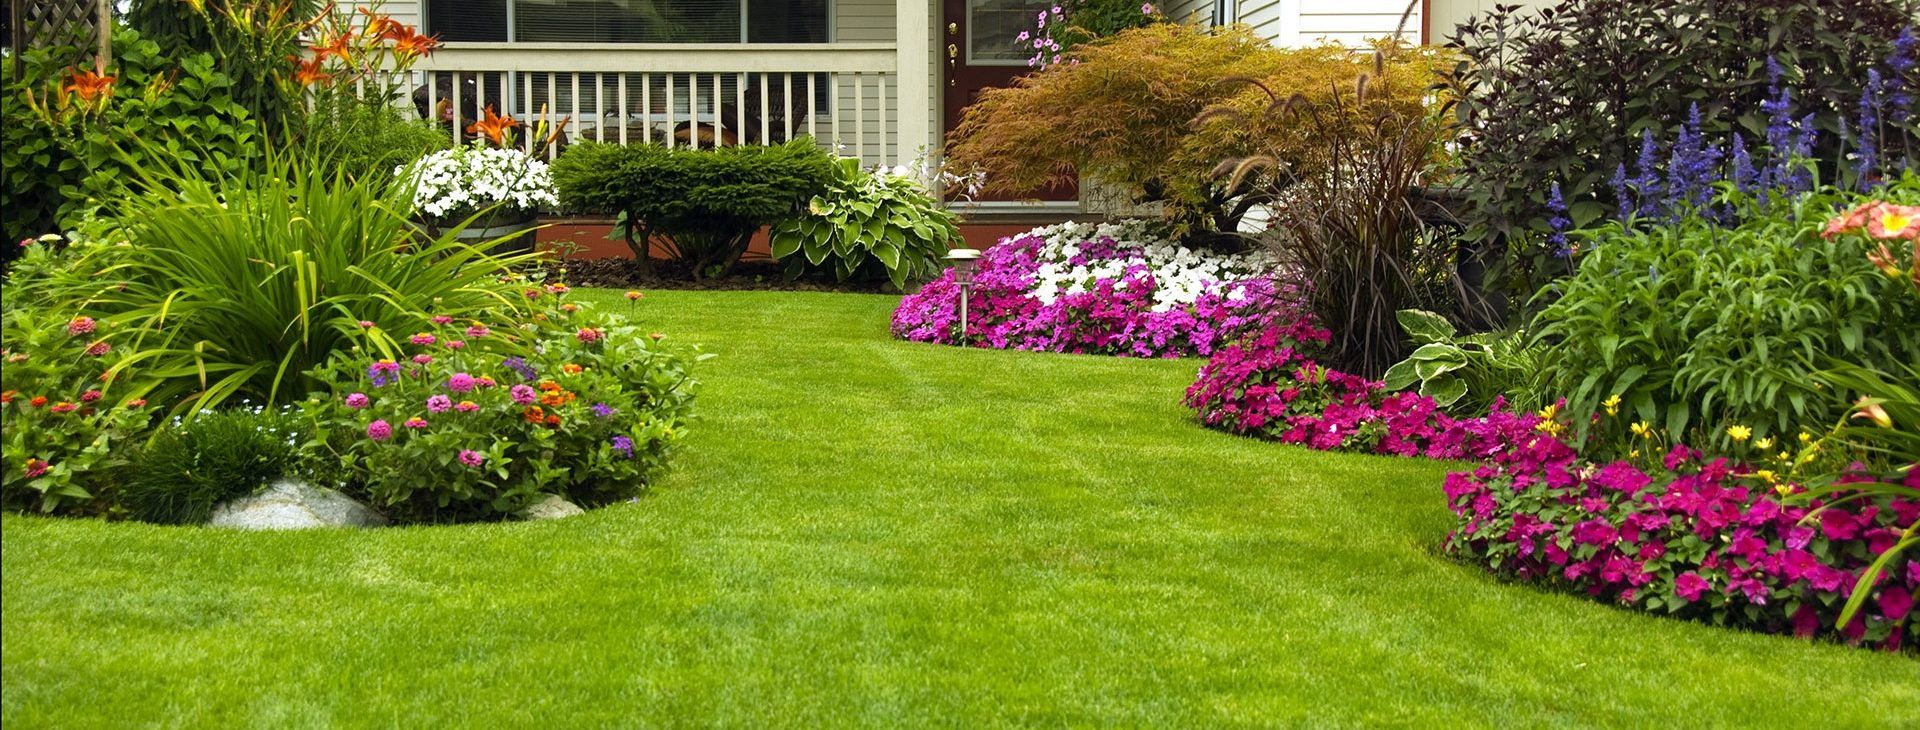 get top foundation planting ideas and designs for your home from one of the best landscaping